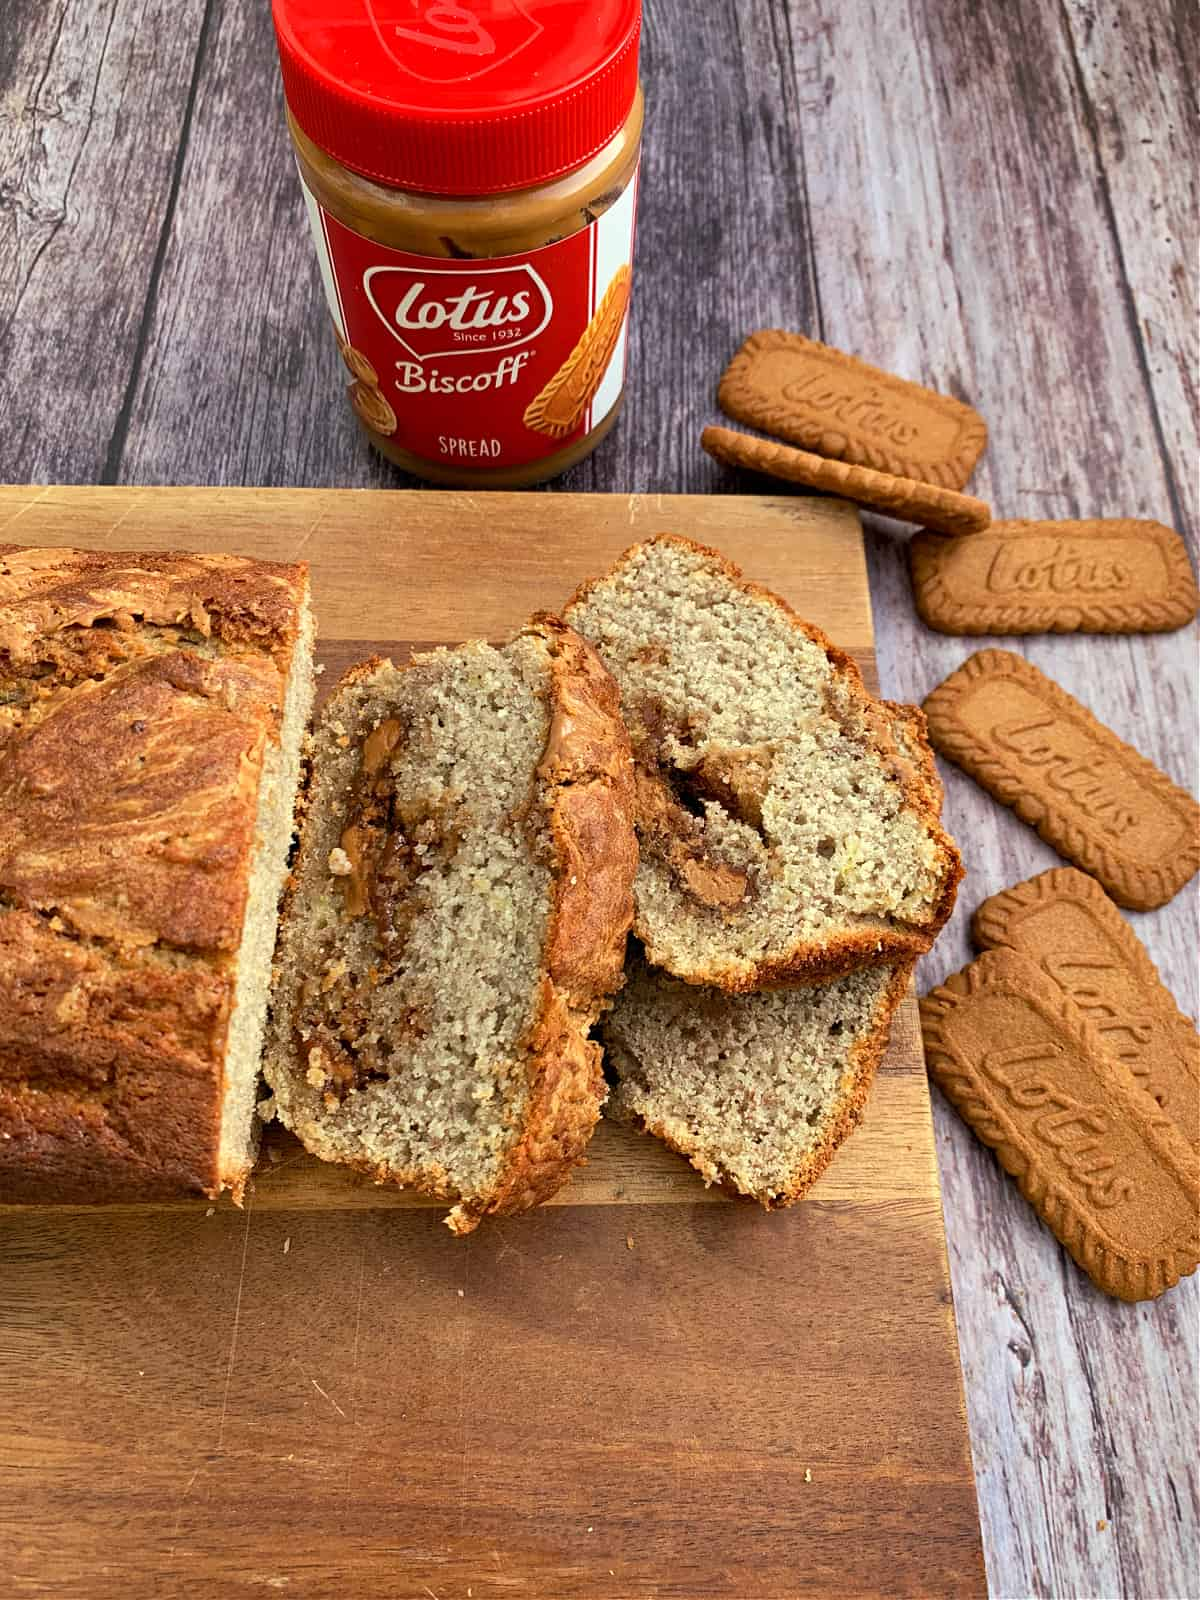 Banana bread with Biscoff spread inside and Biscoff spread and biscuits to the side.